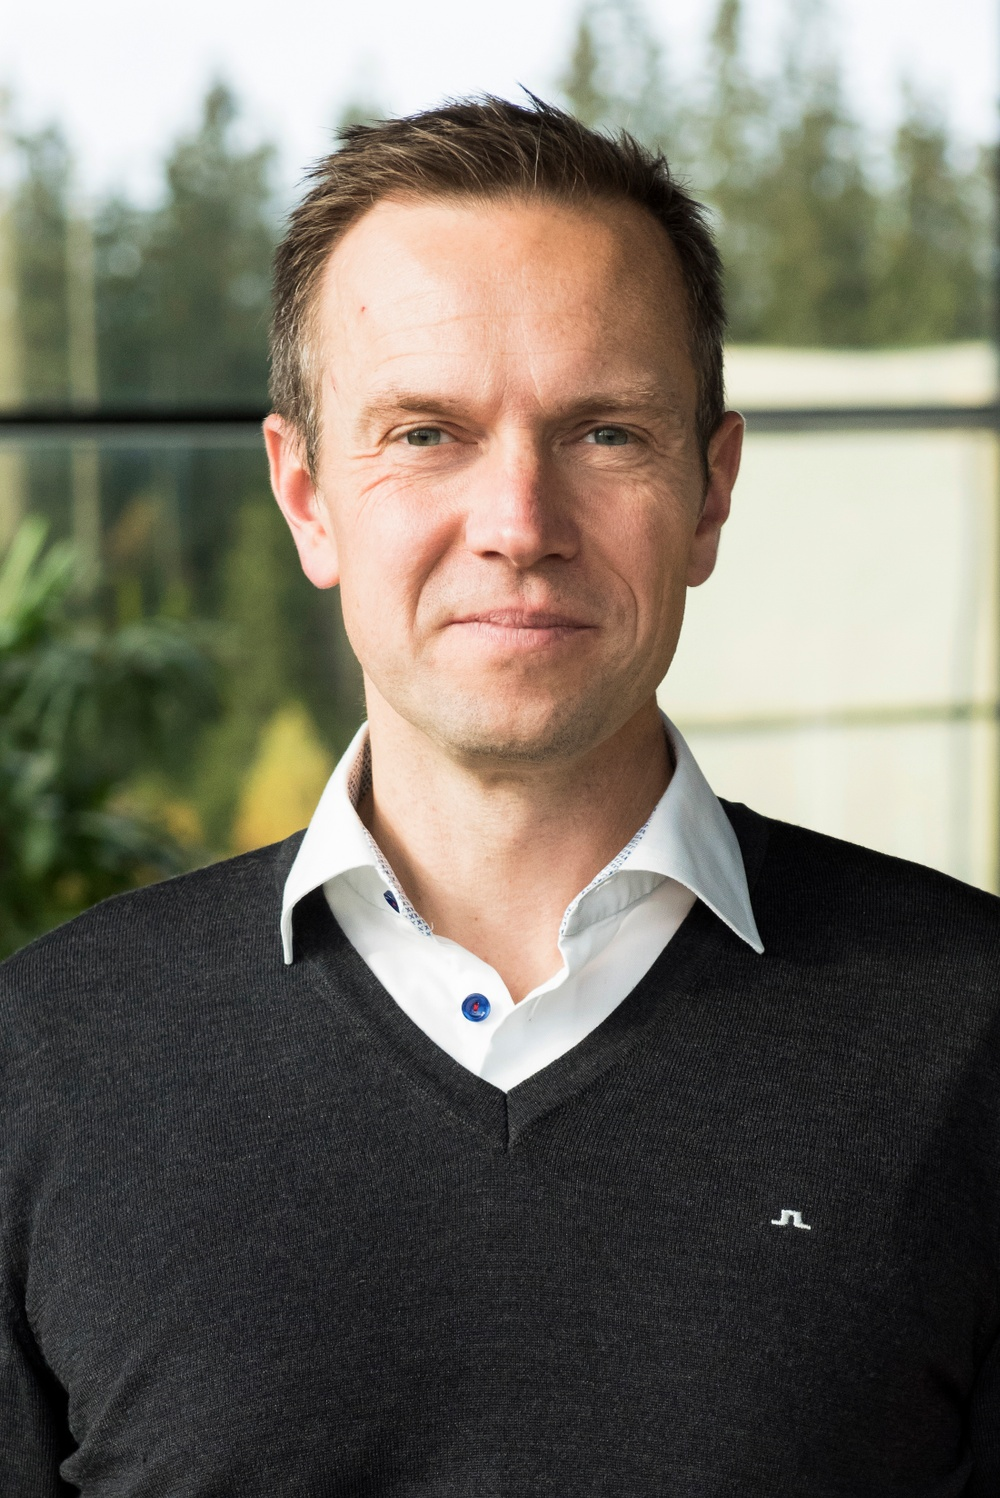 Anders Hülse, CEO of Fristads, Kansas and Leijona